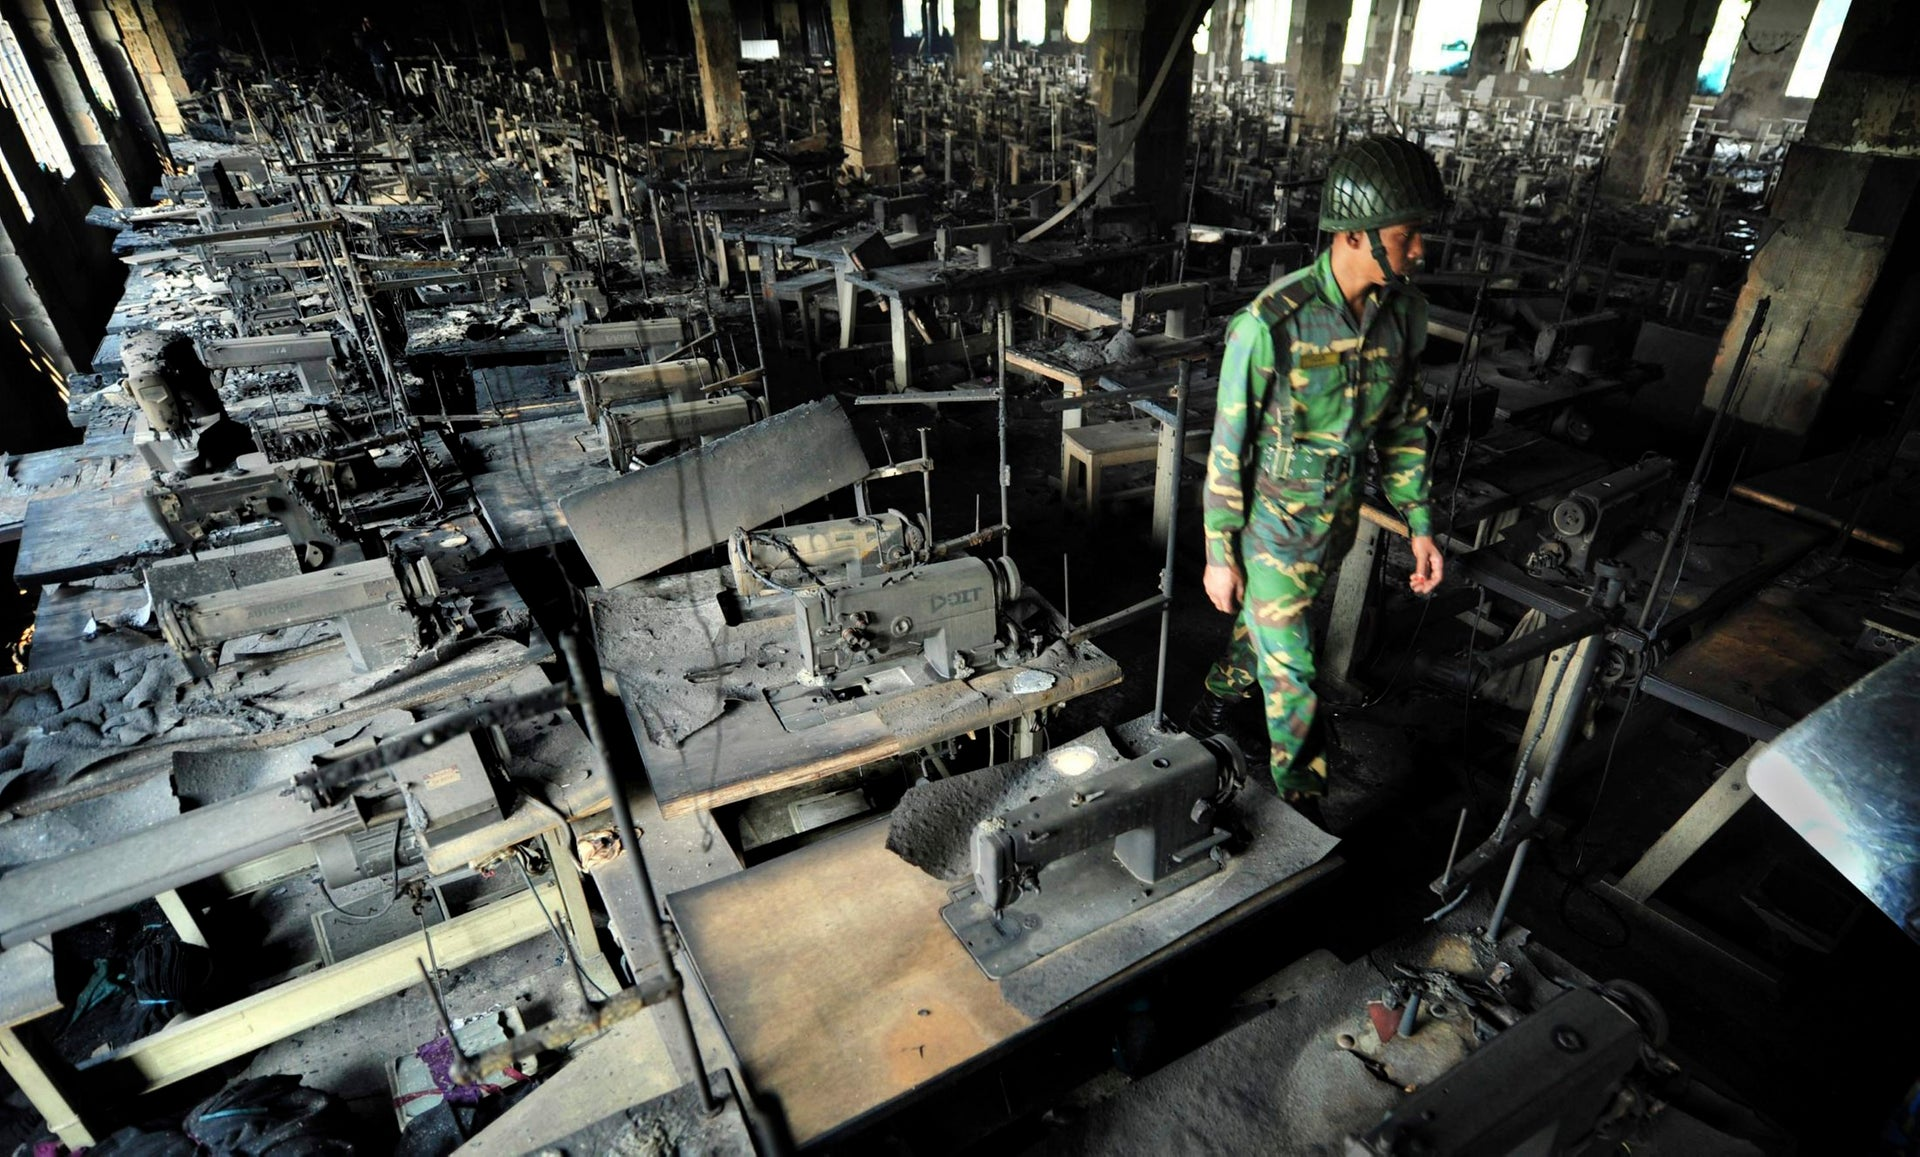 A police officer walks past rows of burnt sewing machines in the burned out Tazreen garment factory in Savar, on the outskirts of Dhaka, Bangladesh, November 25, 2012.